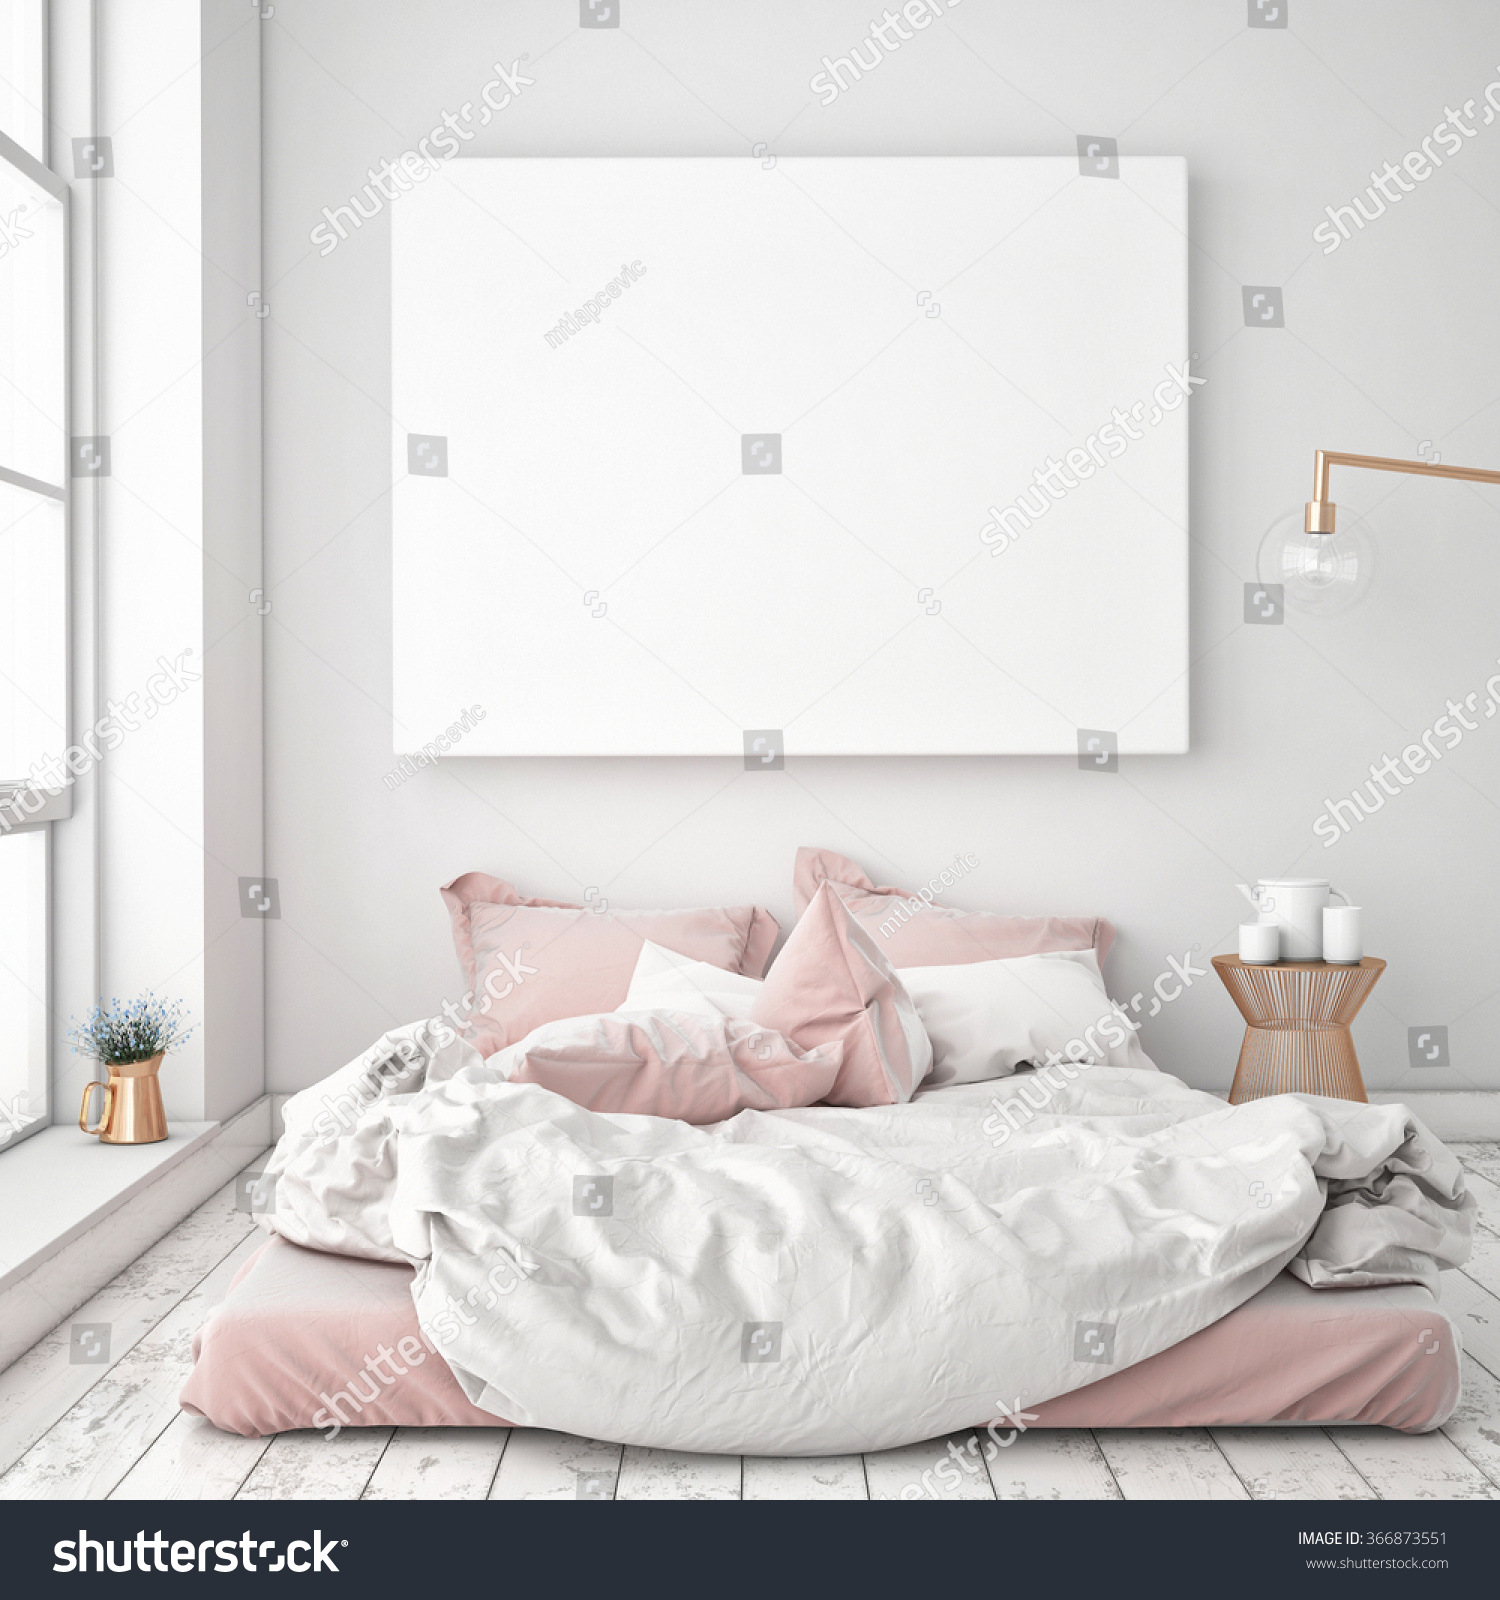 Of Bedroom Mock Blank Poster On Wall Bedroom Stock Illustration 366873551